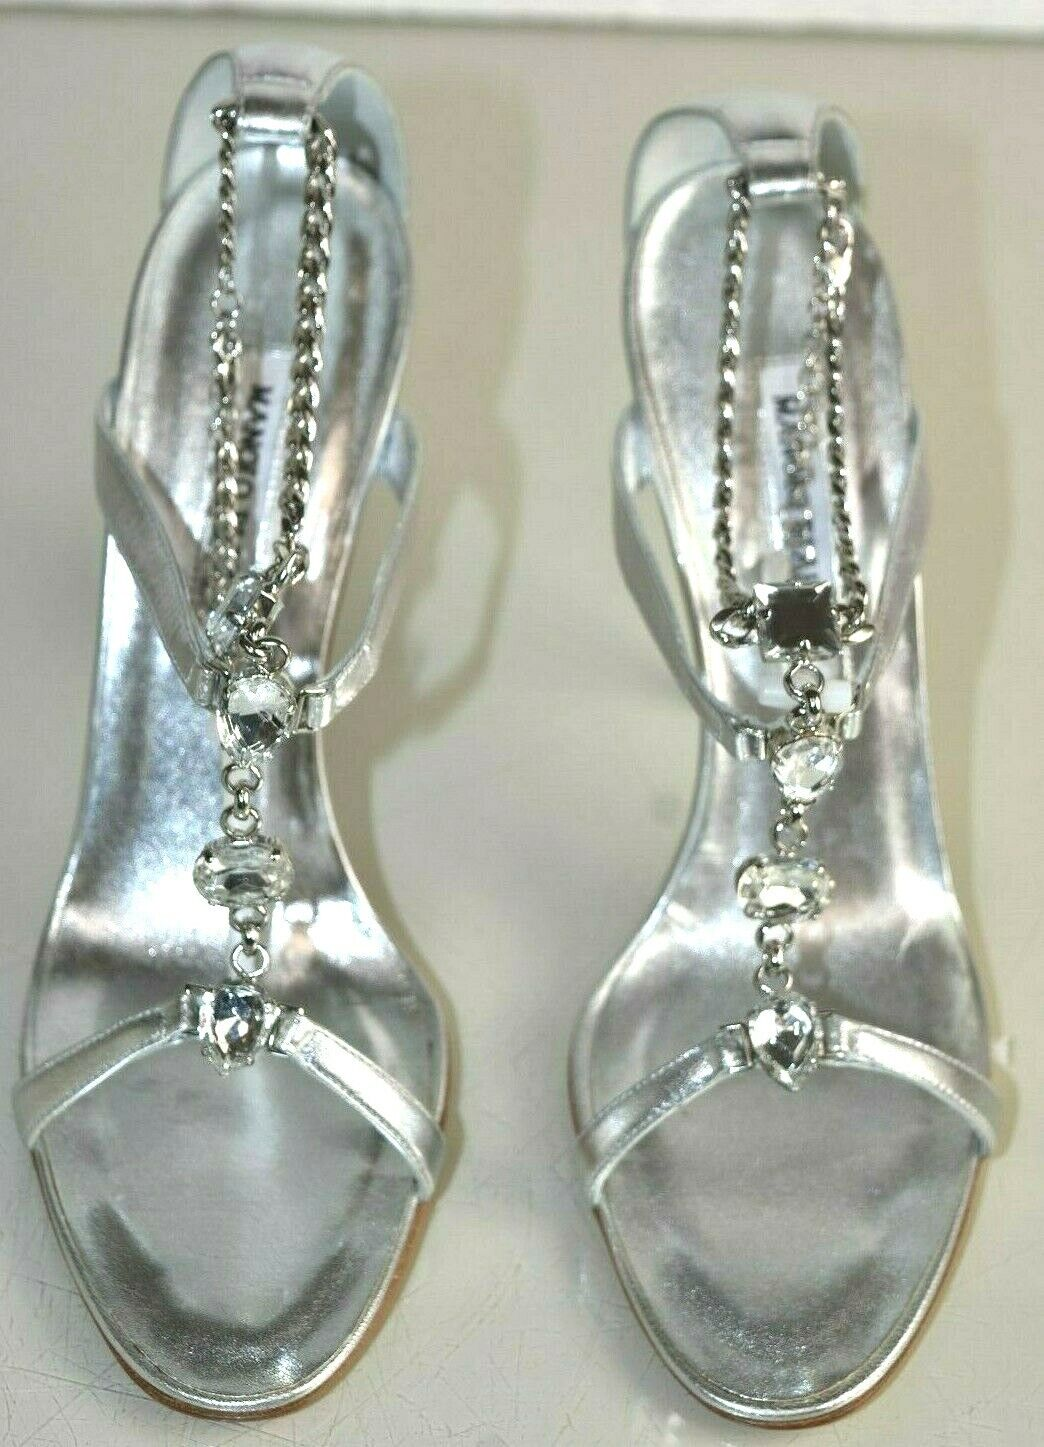 1400 NEW Manolo Blahnik PREFE Jeweled Sandals CRYSTALS    Silver Wedding shoes 41 333273